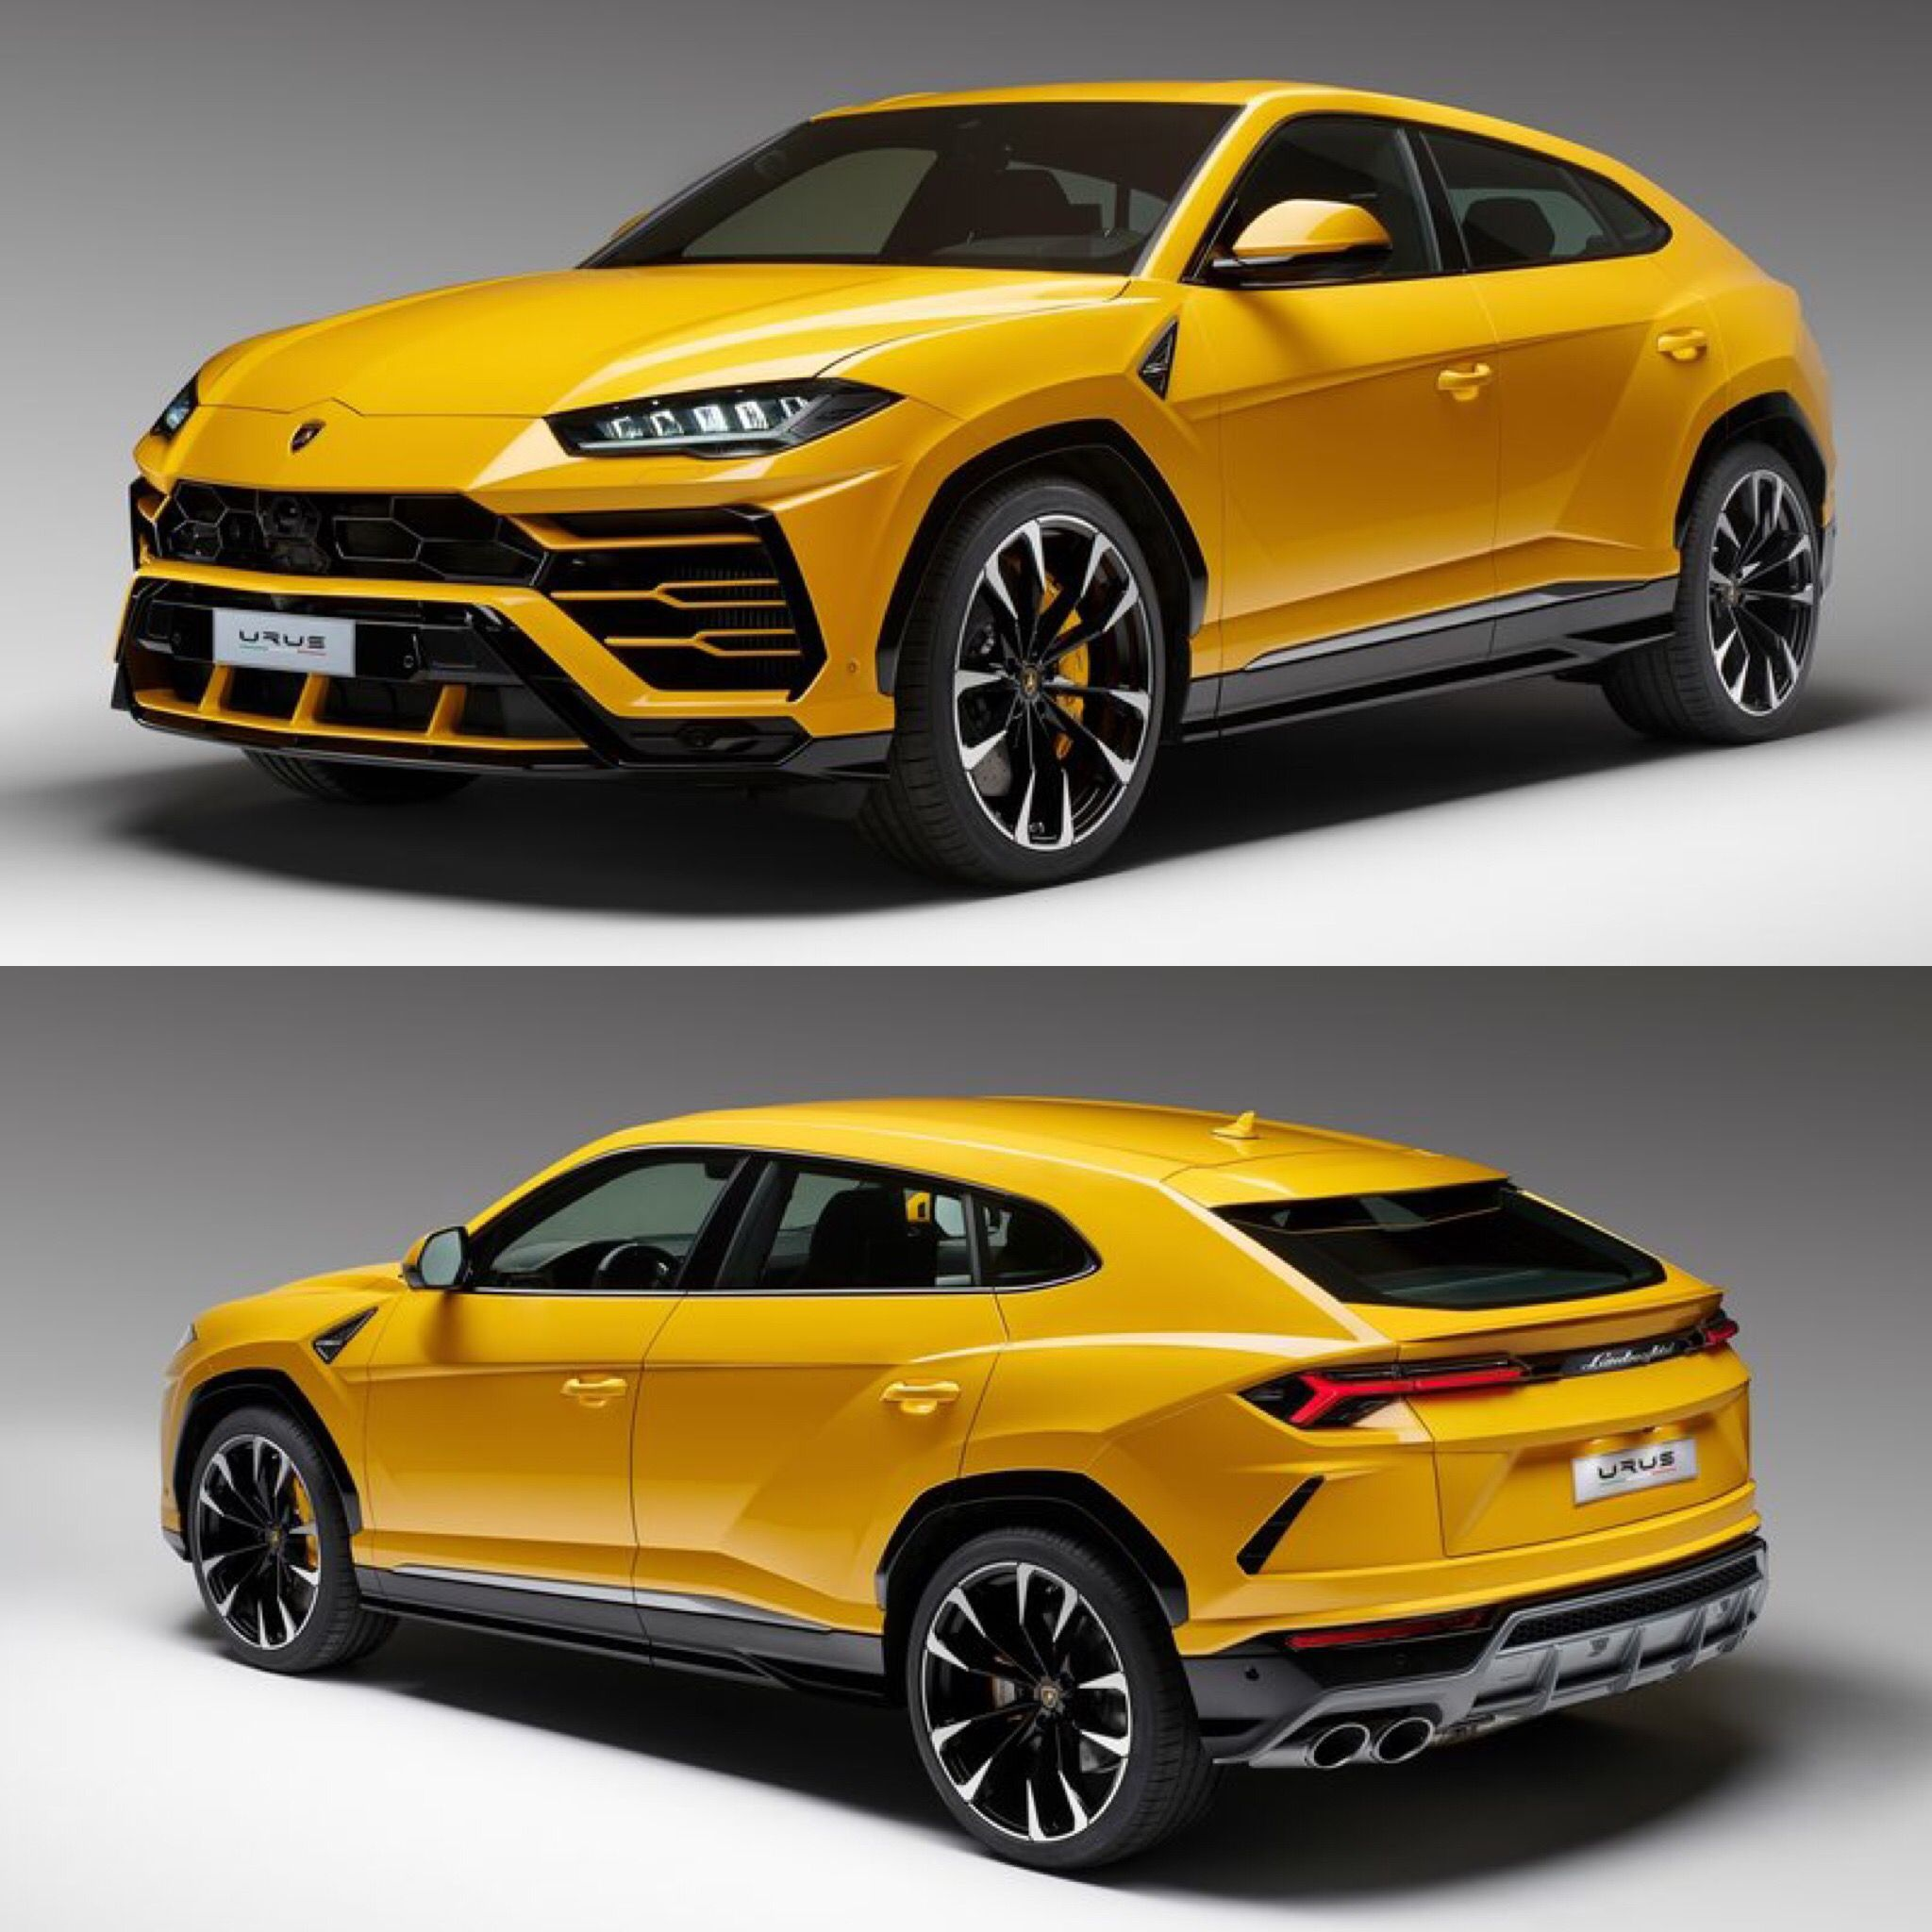 2019 Lamborghini Urus Sure This Is A Super Hotwheel Car But It